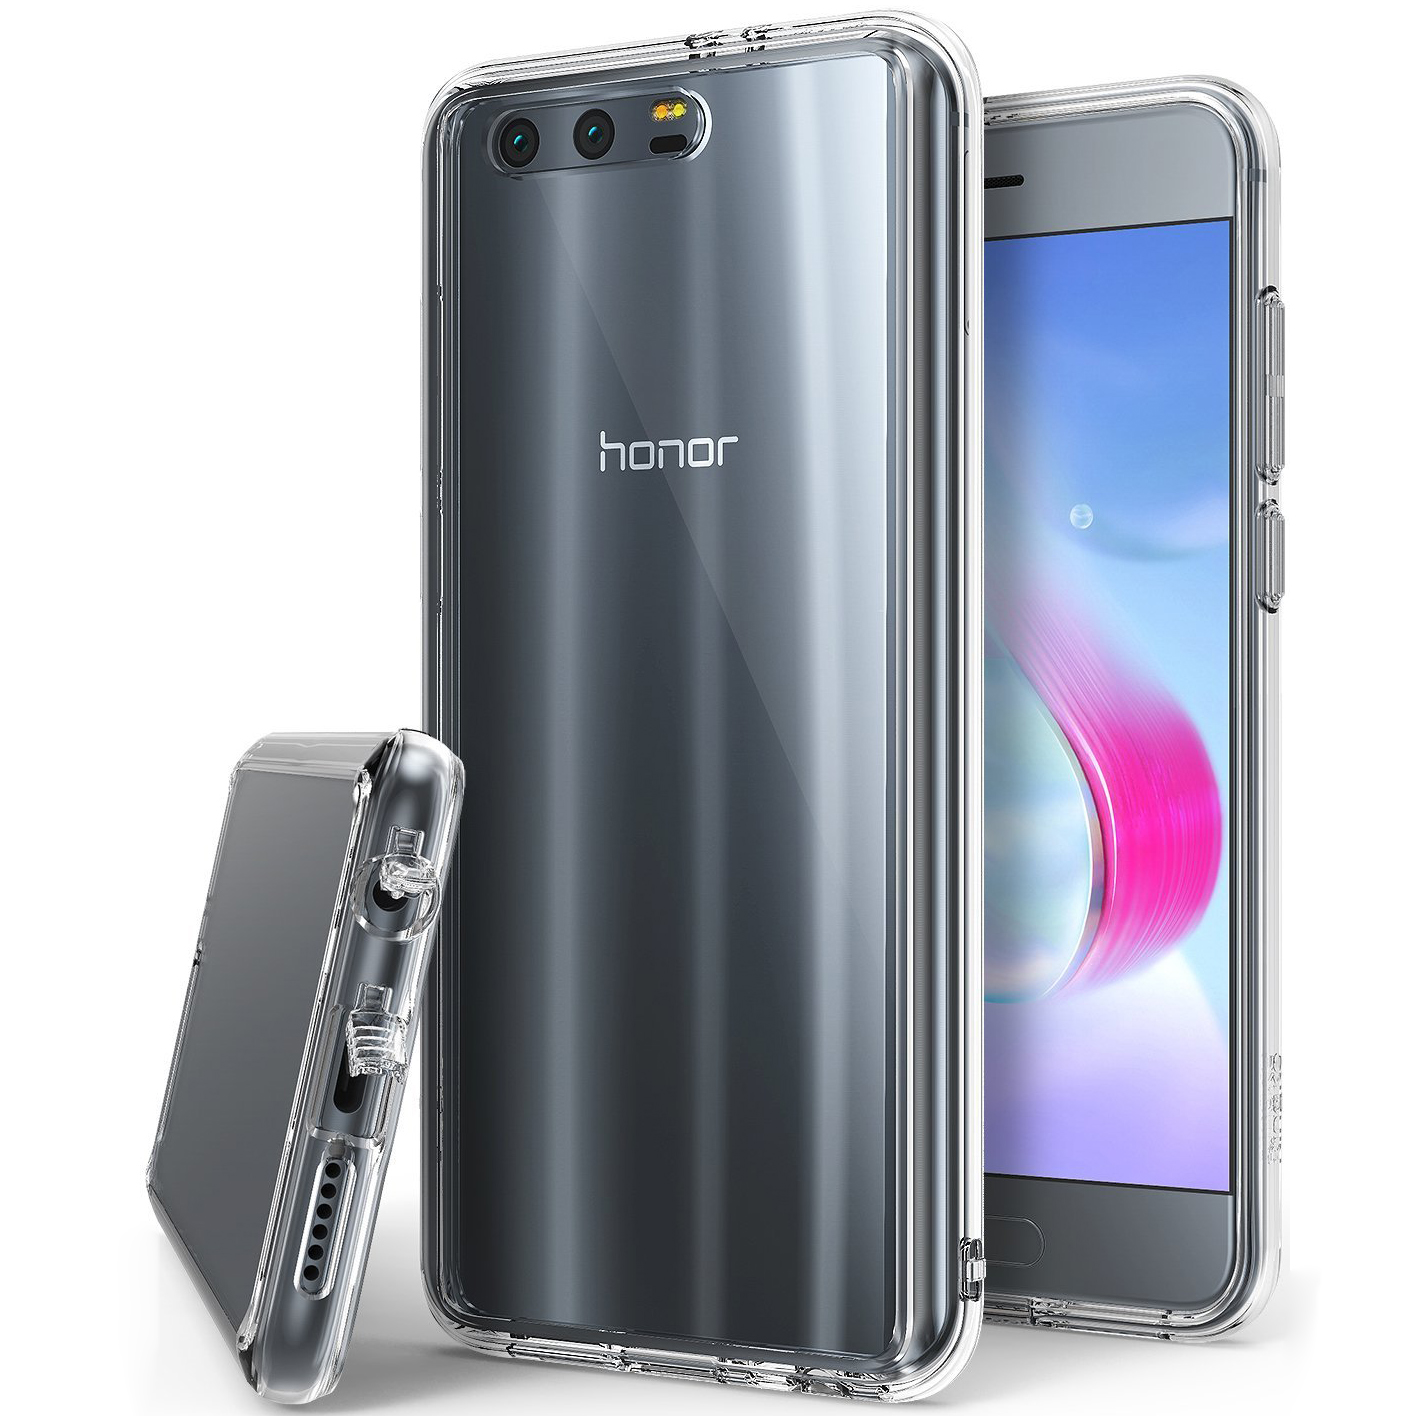 Etui Rearth Ringke Fusion do Huawei Honor 9